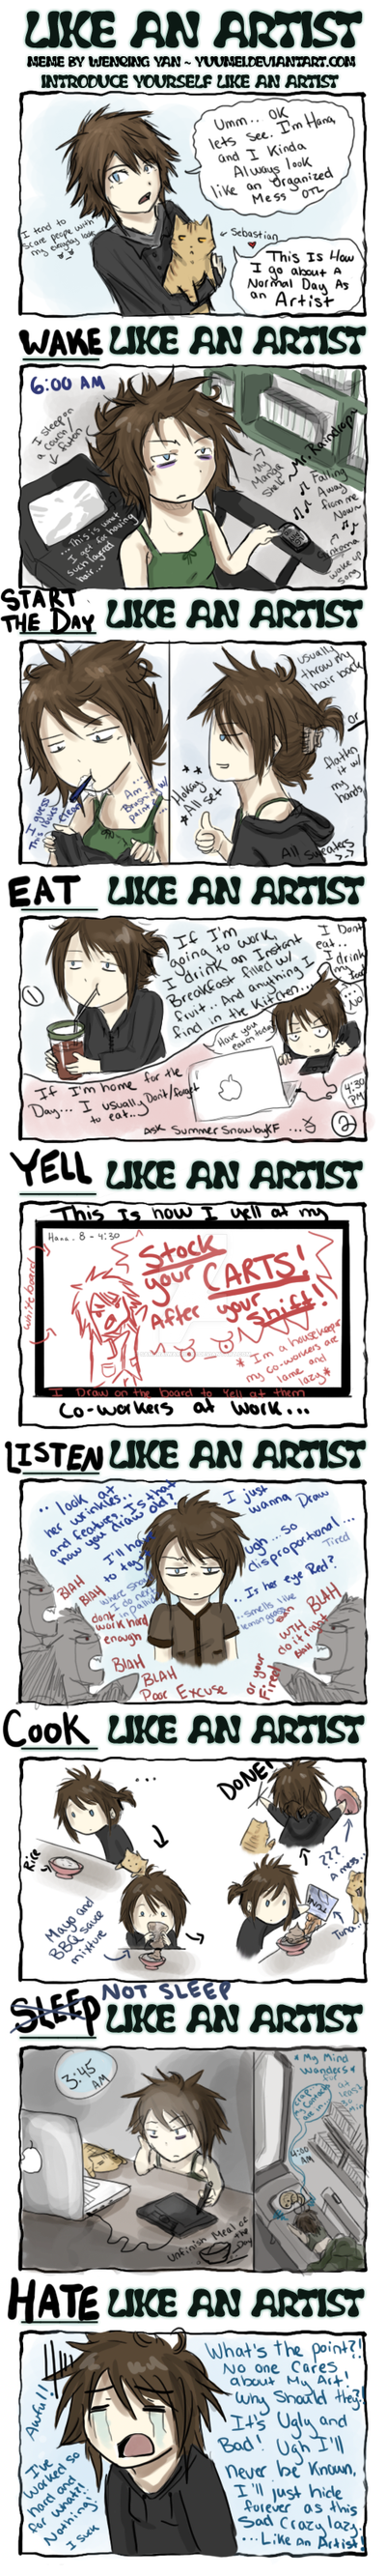 Like an artist Meme by SamuraiWARRIOR7